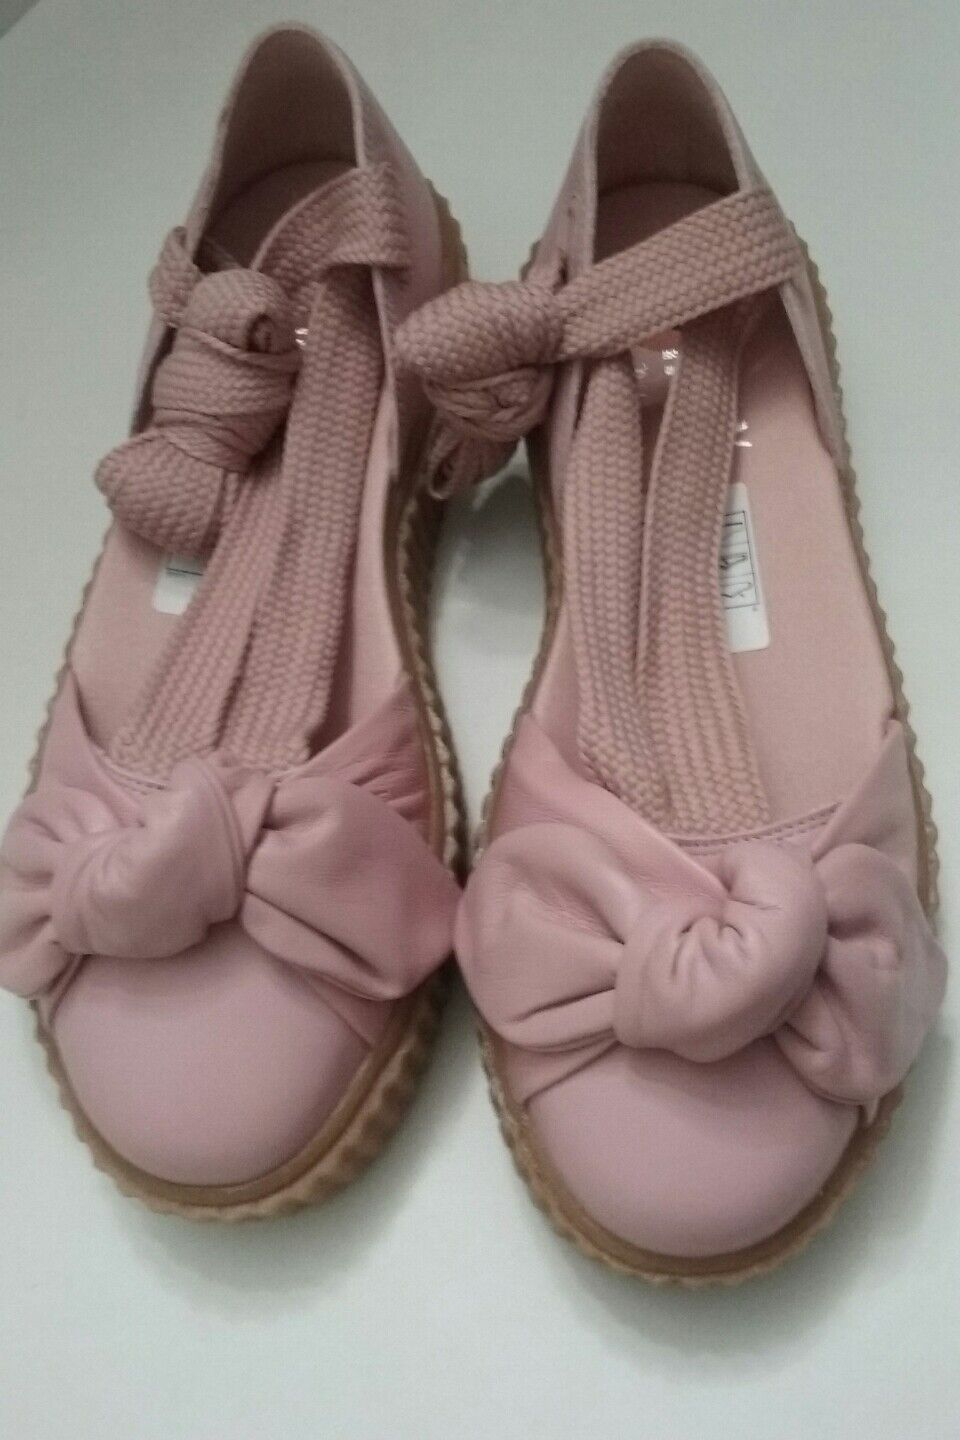 PUMA Rihanna Sandals Women's 7.5Pink Leather Bow Creeper Platform shoes NEW  140